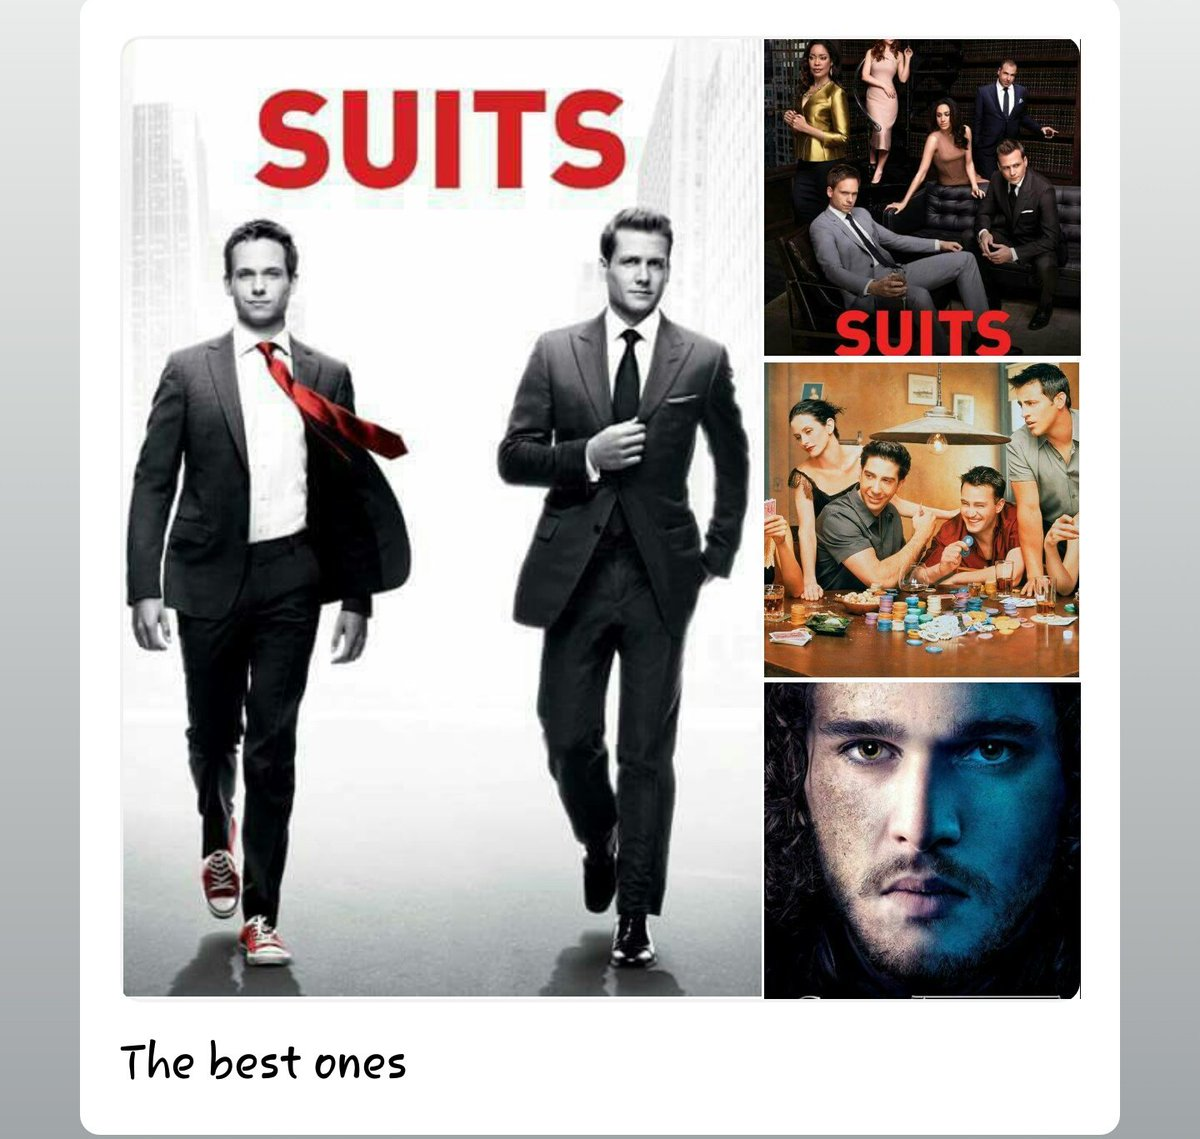 Love these. #Suits for days. #GameOfThrones for nights and  #friends for life.  #PSLVC46 #WednesdayWisdom #NayaPakVSPuranaPak #ISRO #Pakistan #WhatsApp #huawei #china #trump #ronaldo #messi #Chandler #MeghanMarkle #JohnSnow #dollars #CricketWorldCup2019 https://t.co/xy7l3meUhK